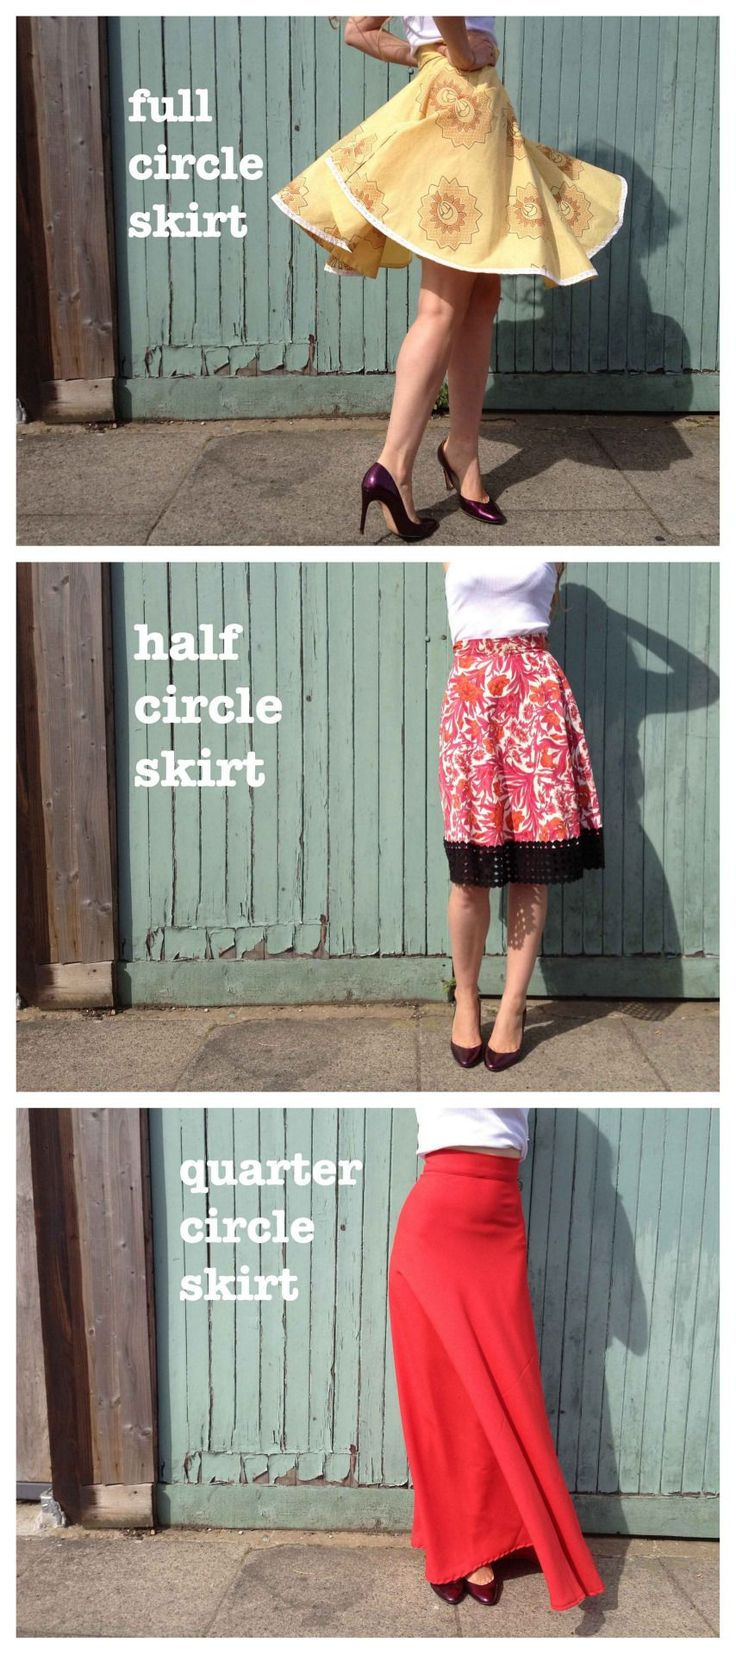 DIY Full Circle Foolproof Skirt Tutorial from By Hand London. This afternoon I got a message asking about tutorials for circle skirts that actually worked and remembered this one that I hadn't posted. There are calculations for full, half and quarter...